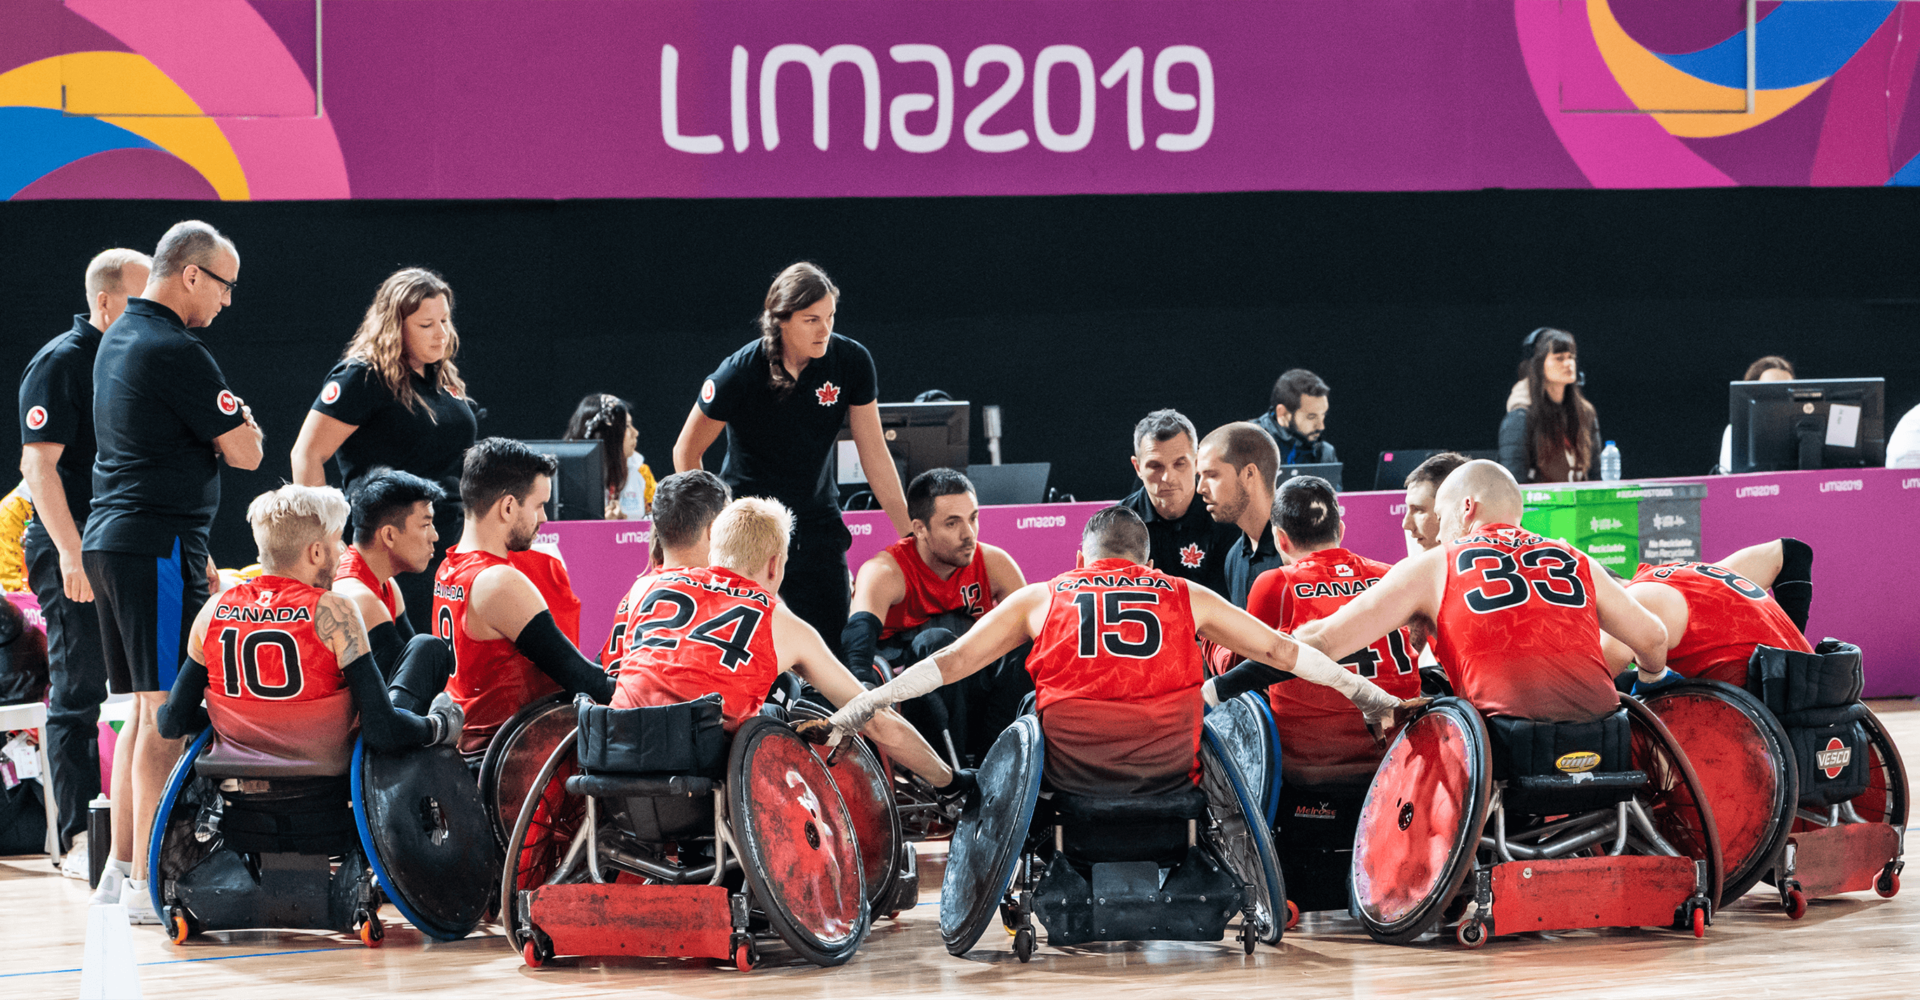 CPC AND CBC/RADIO-CANADA TO OFFER STREAMING COVERAGE OF PARALYMPIC QUALIFIERS